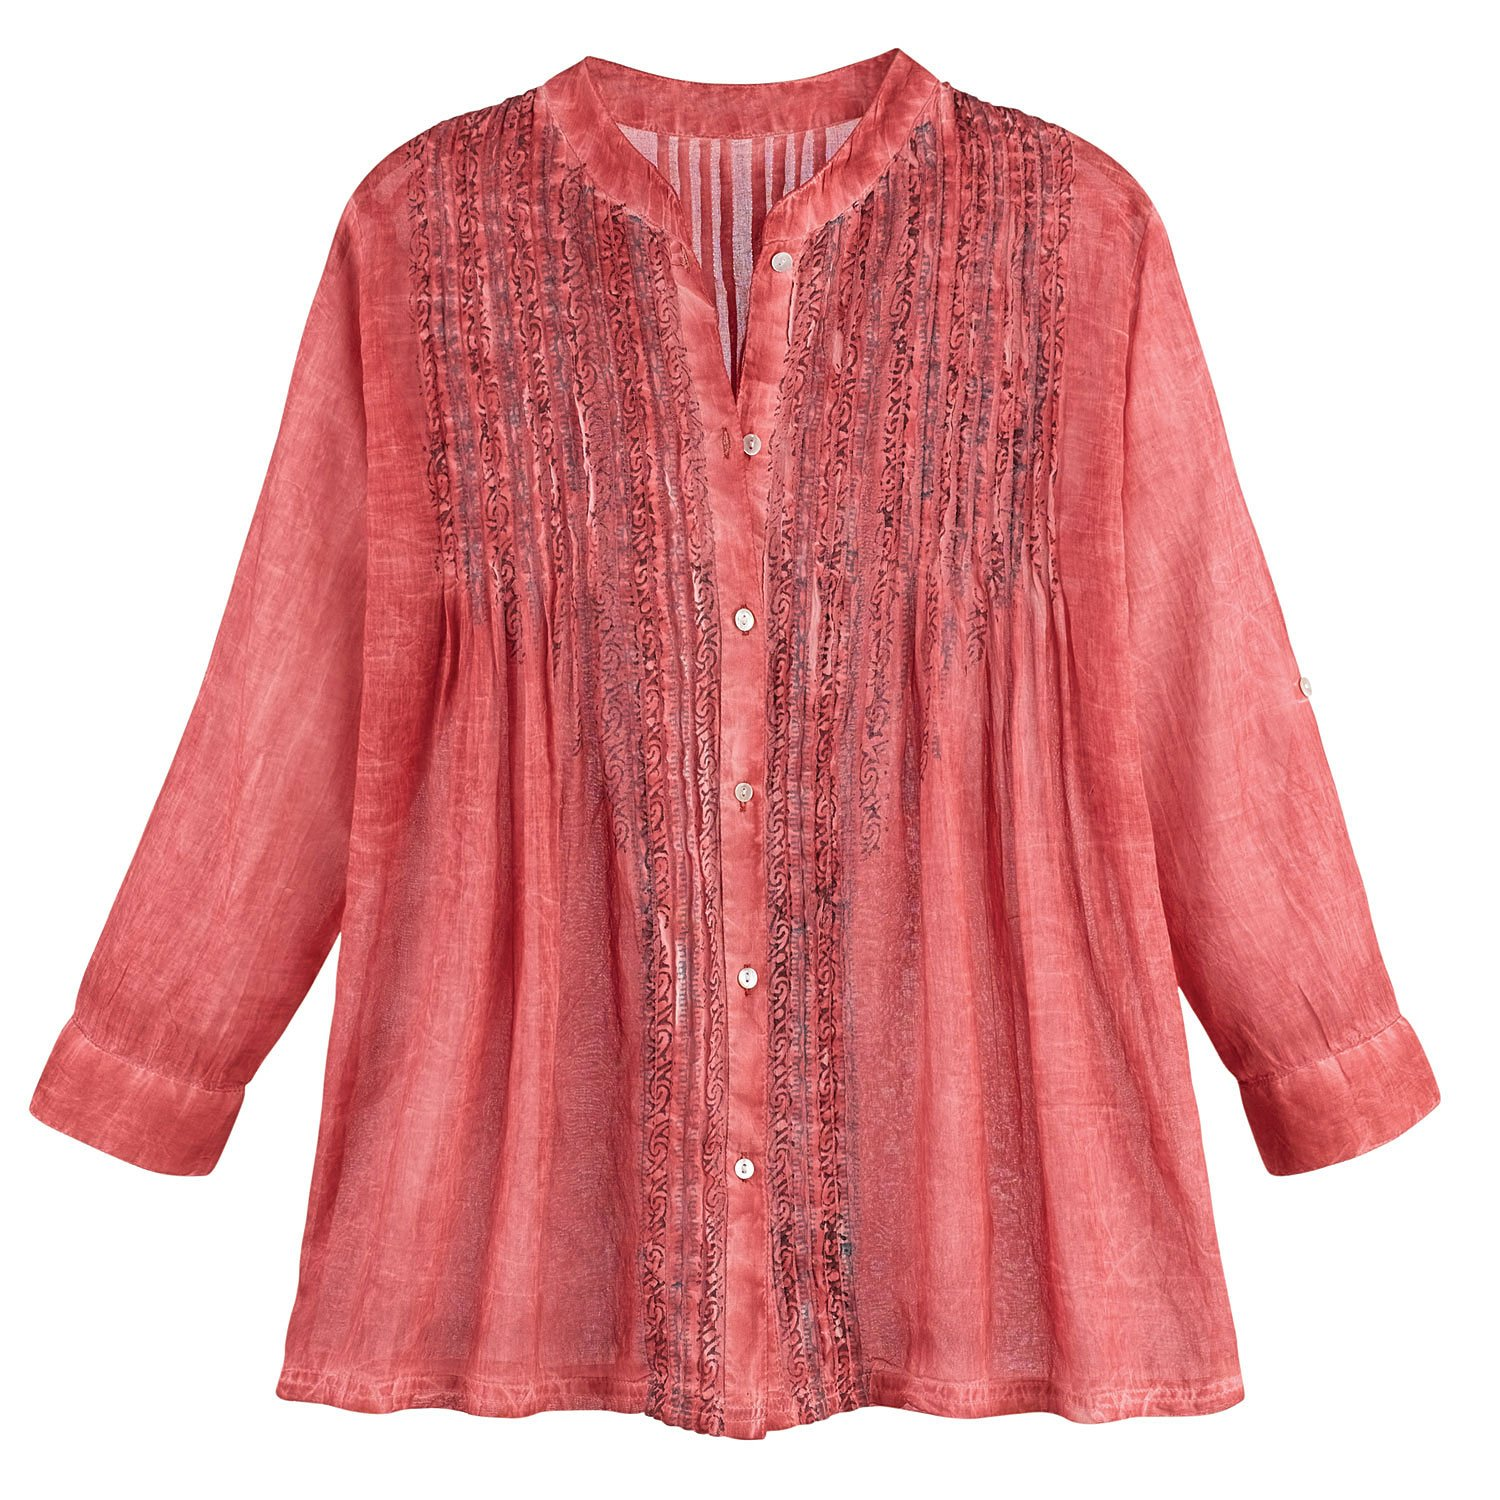 ae448caa6 Women's Tunic Shirt and Scarf Set - Desert Rose Red - Button Down Top at  Amazon Women's Clothing store: